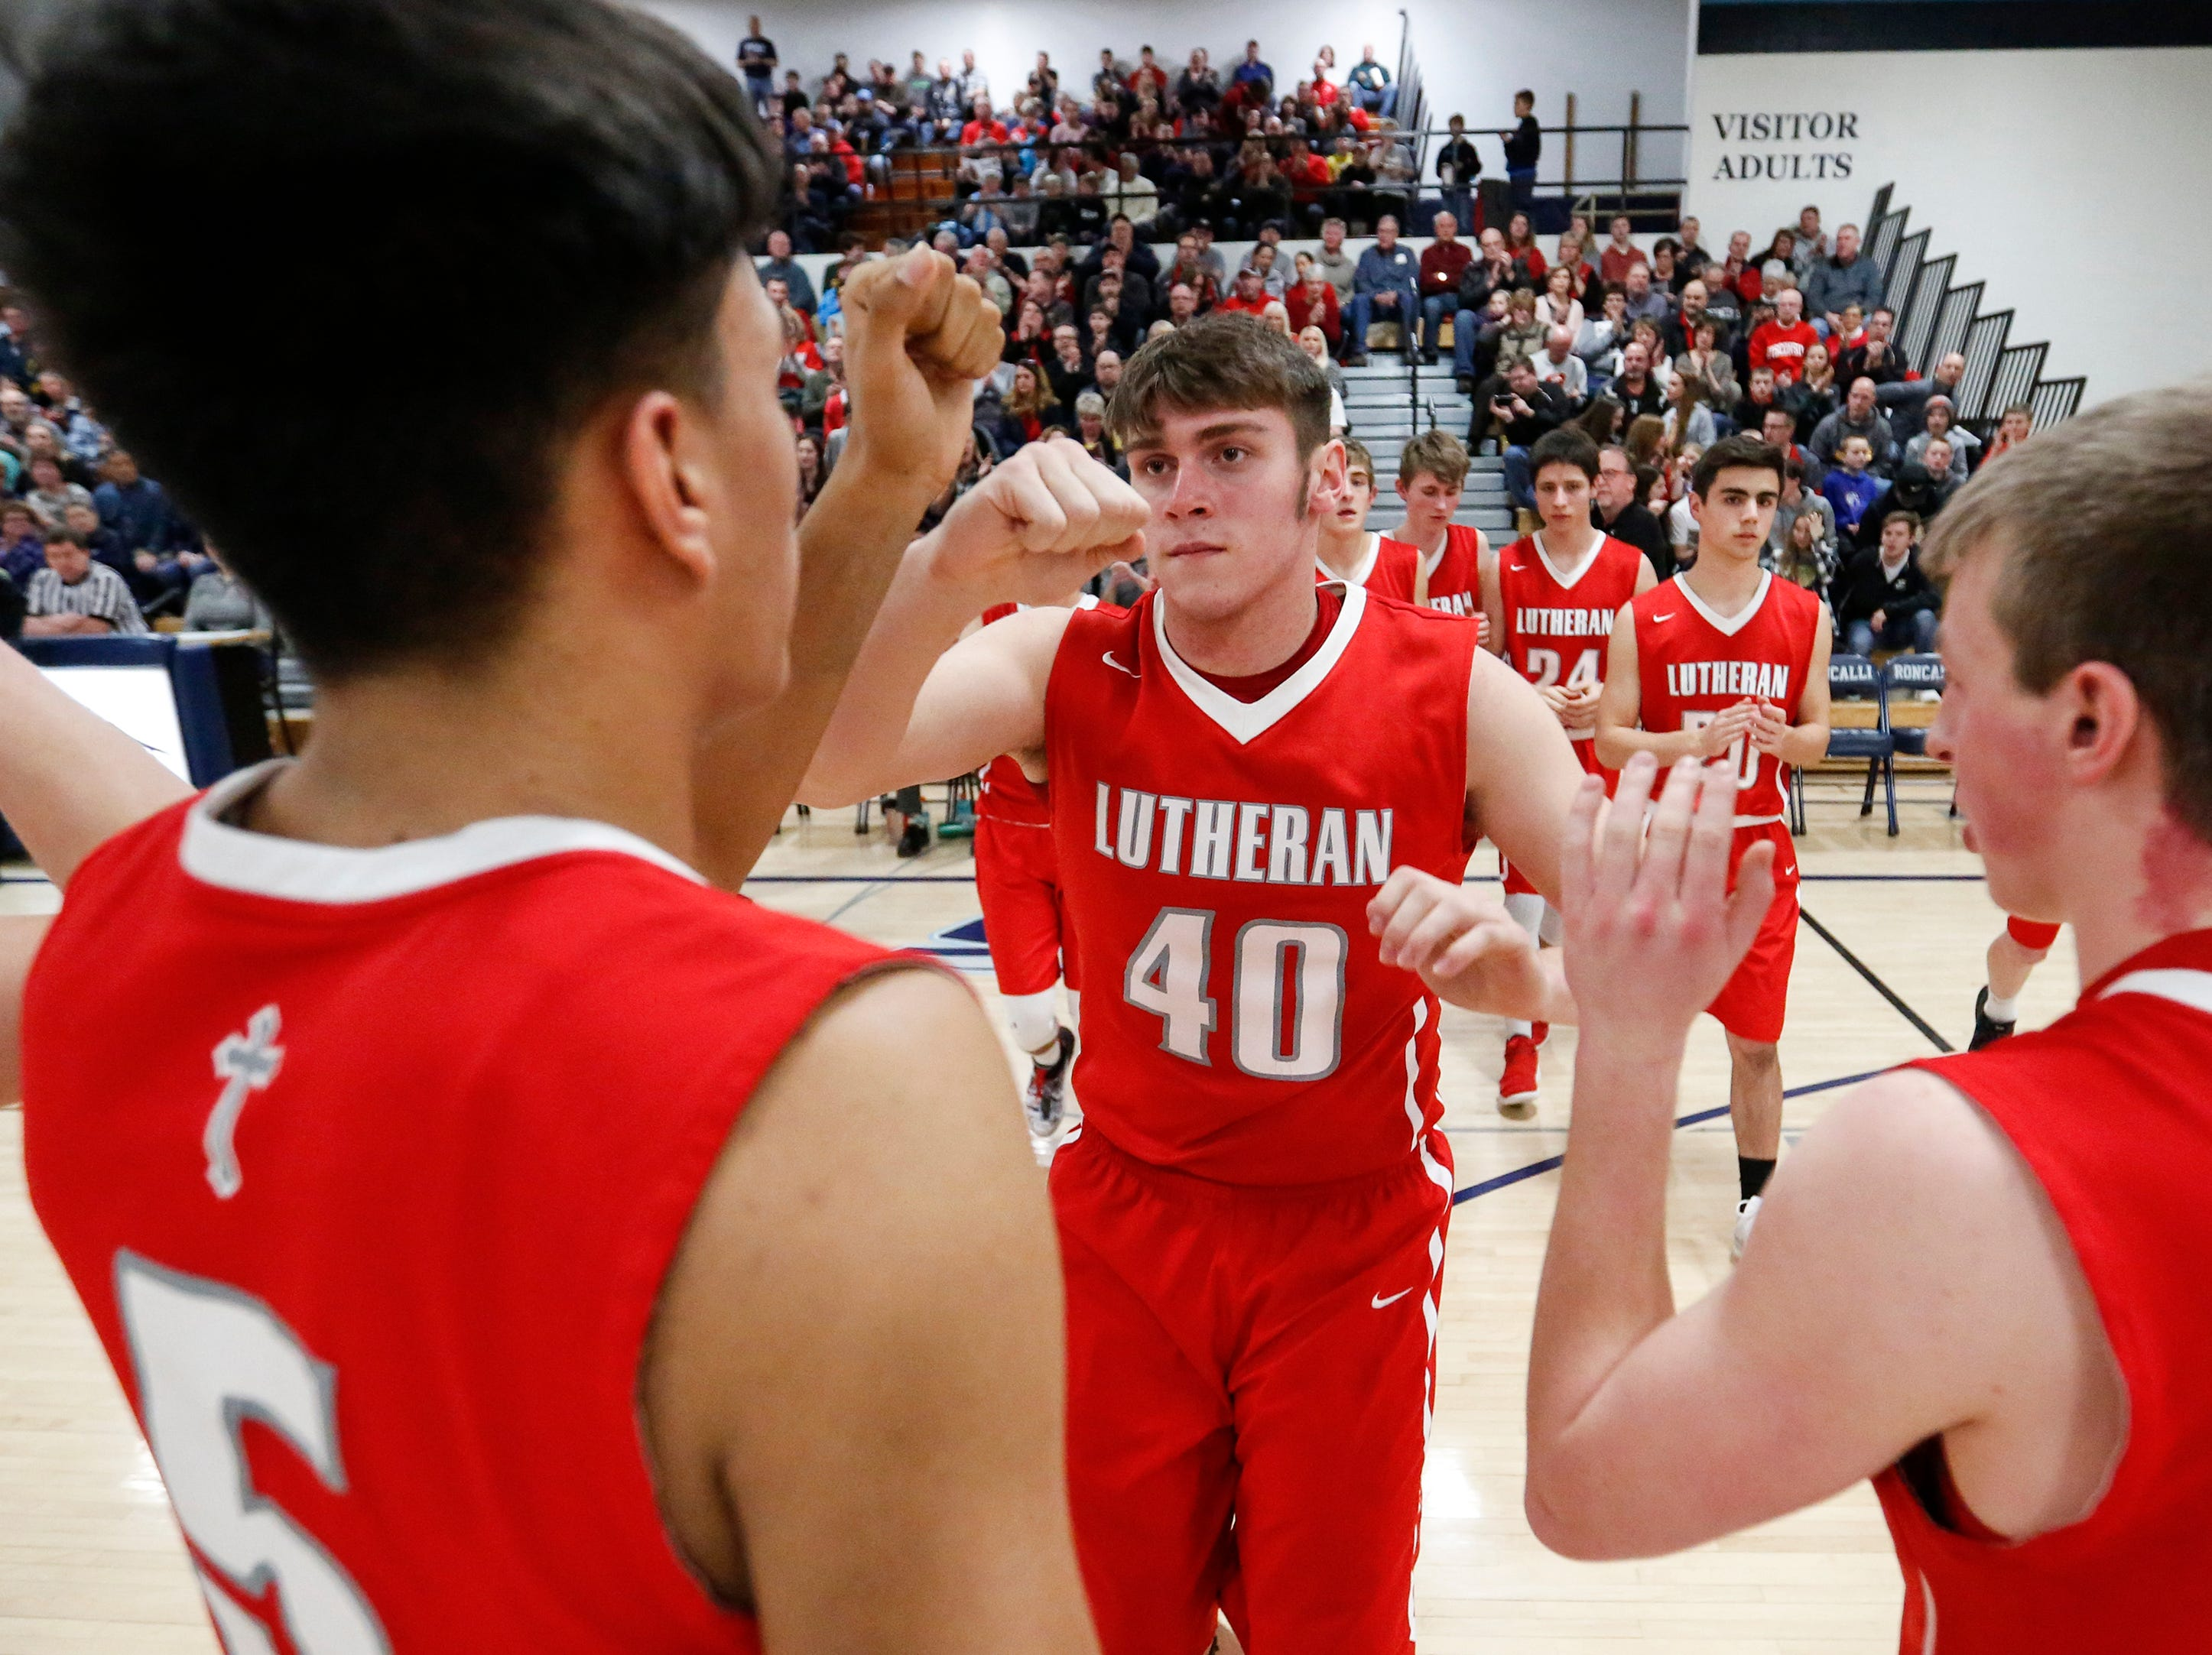 Manitowoc Lutheran's Korey Garceau fist bumps his teammates as he's introduced before a WIAA Division 4 regional semifinal game against Roncalli at Roncalli High School Friday, March 1, 2019, in Manitowoc, Wis. Joshua Clark/USA TODAY NETWORK-Wisconsin